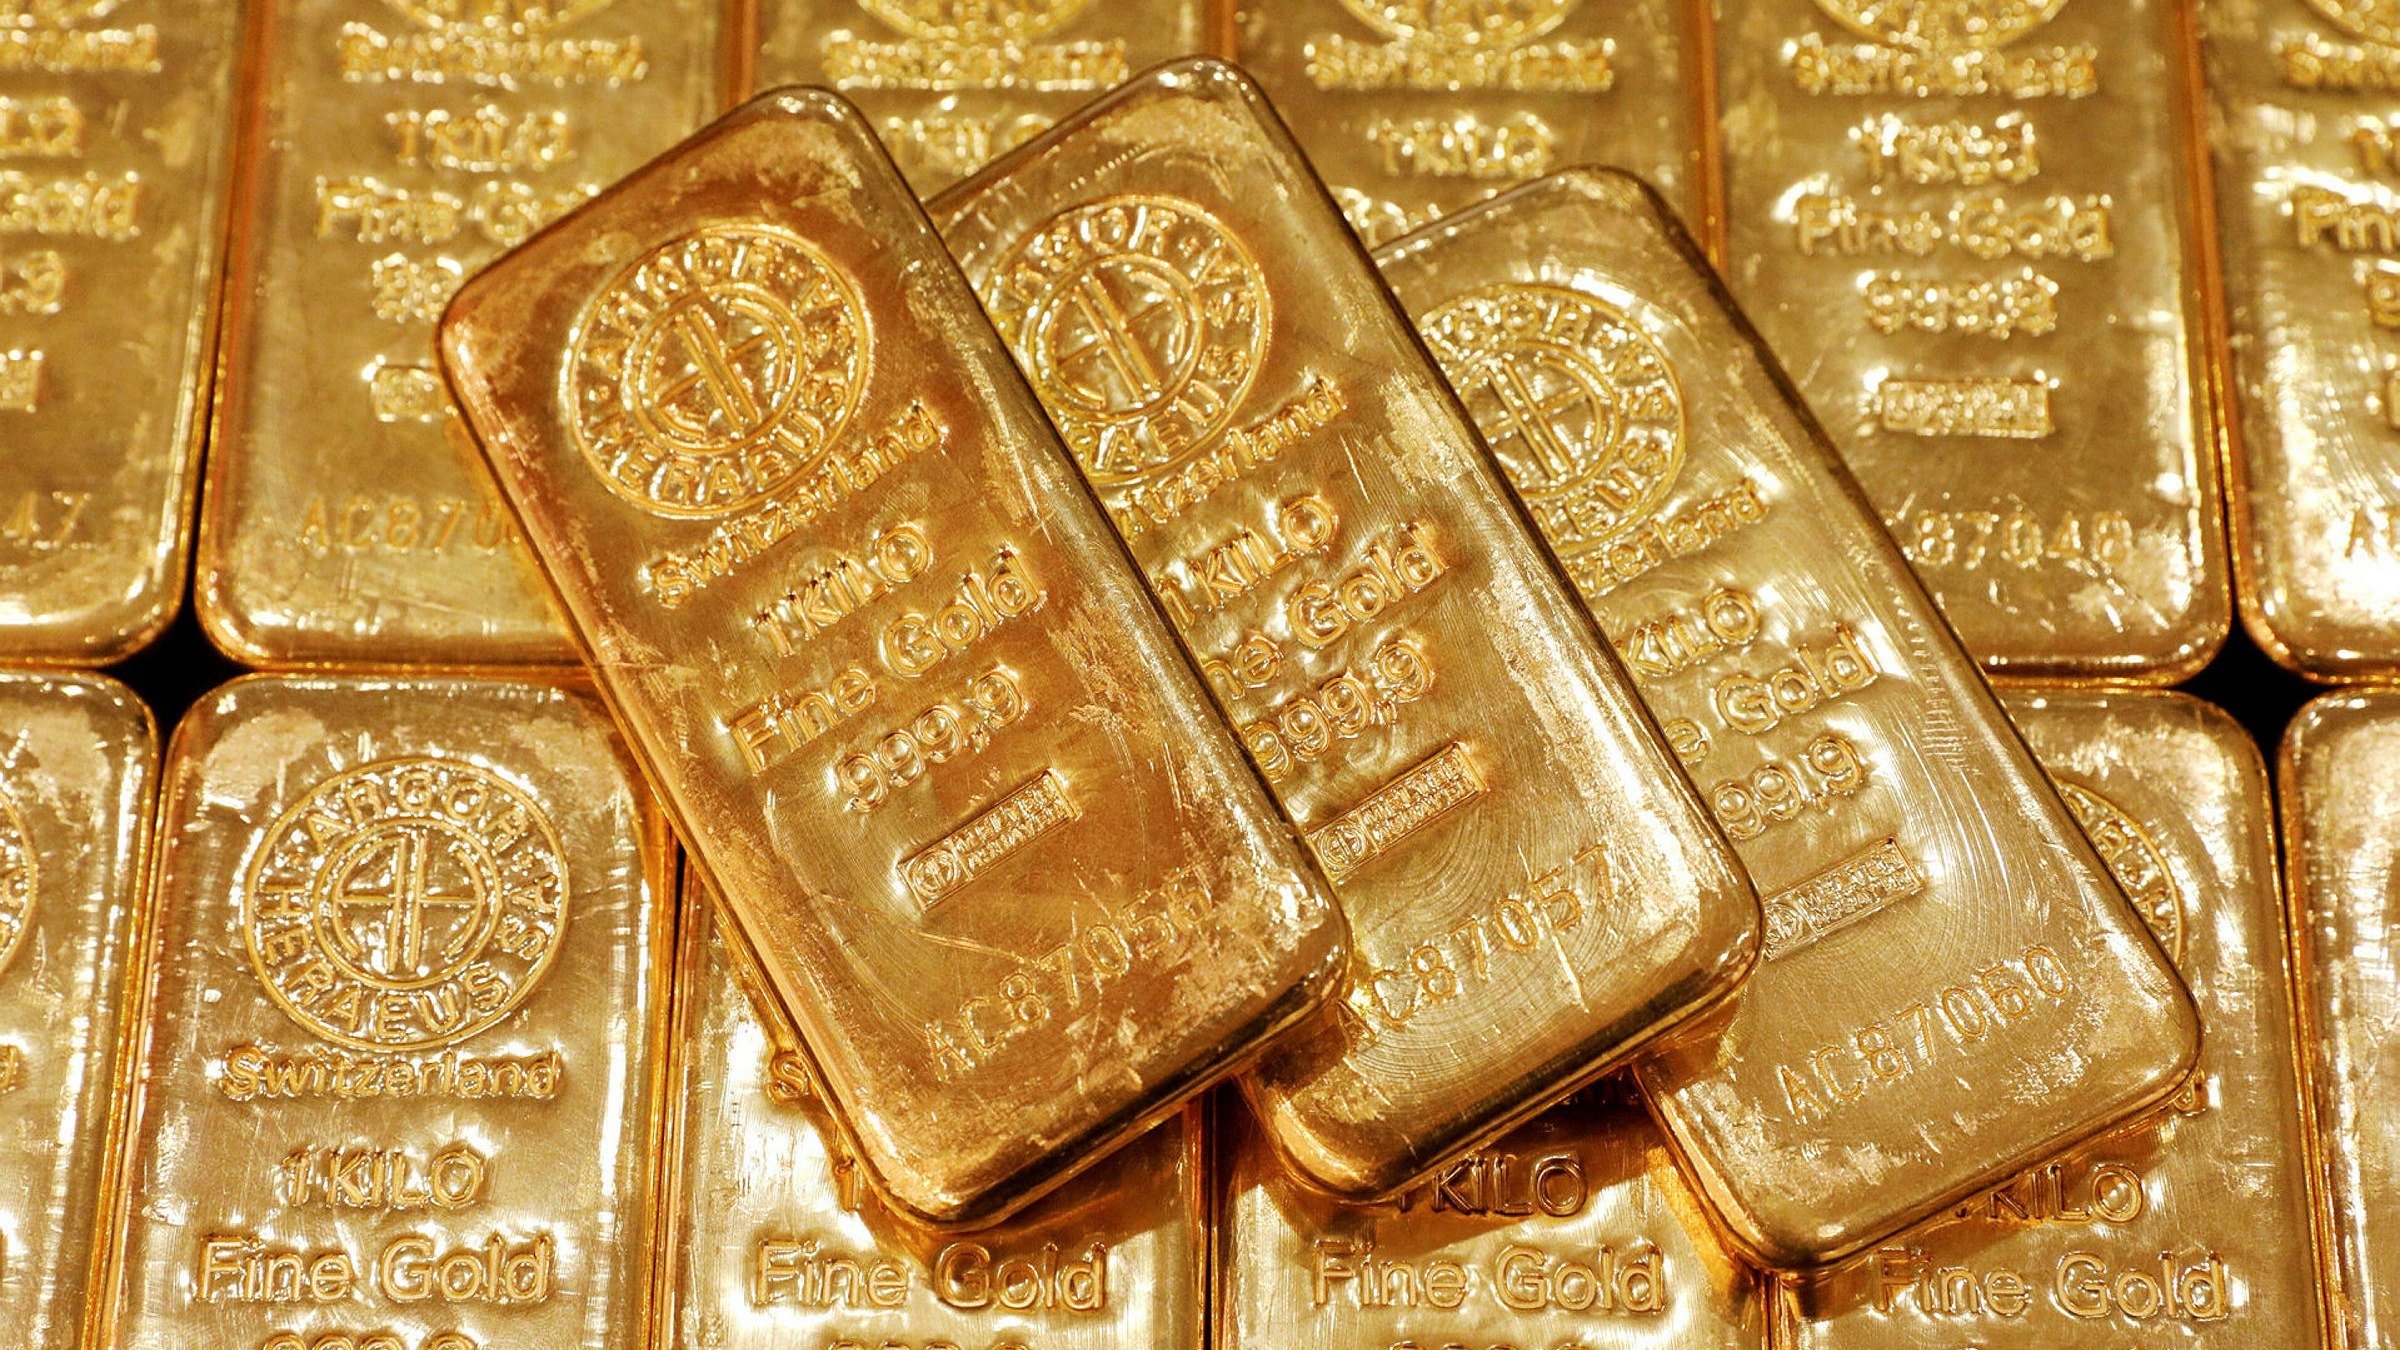 B2Gold (BTG) Stock Gained 20% Since Late March: But Why?